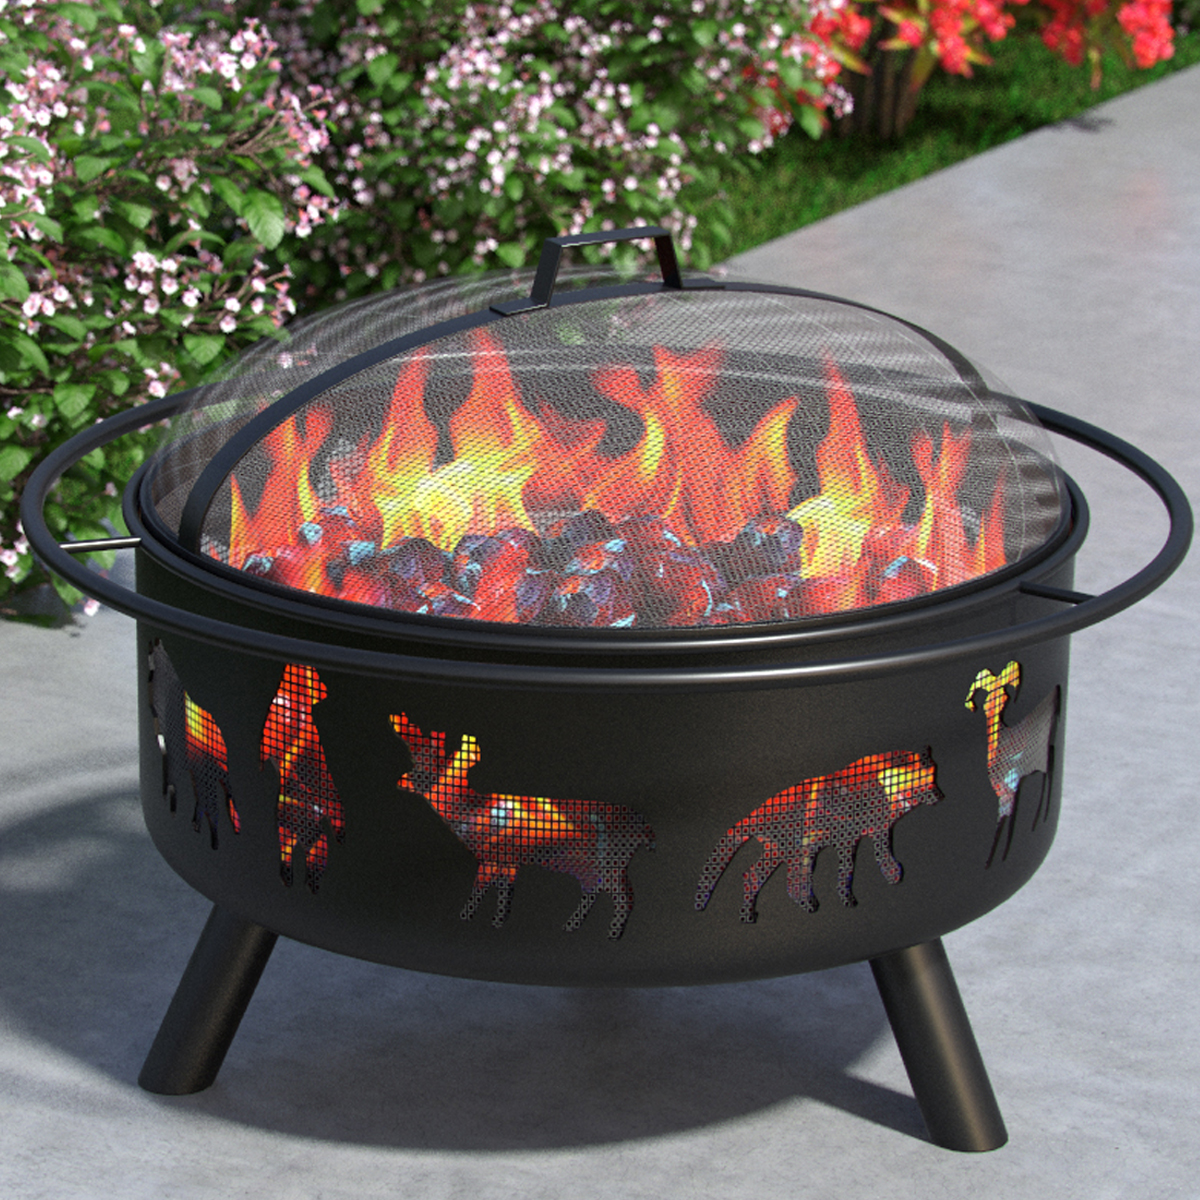 Regal Flame Solar 23� Portable Outdoor Fireplace Fire Pit Ring for Backyard Patio Fire, RV, Patio Heater, Stove, Camping, Bonfir